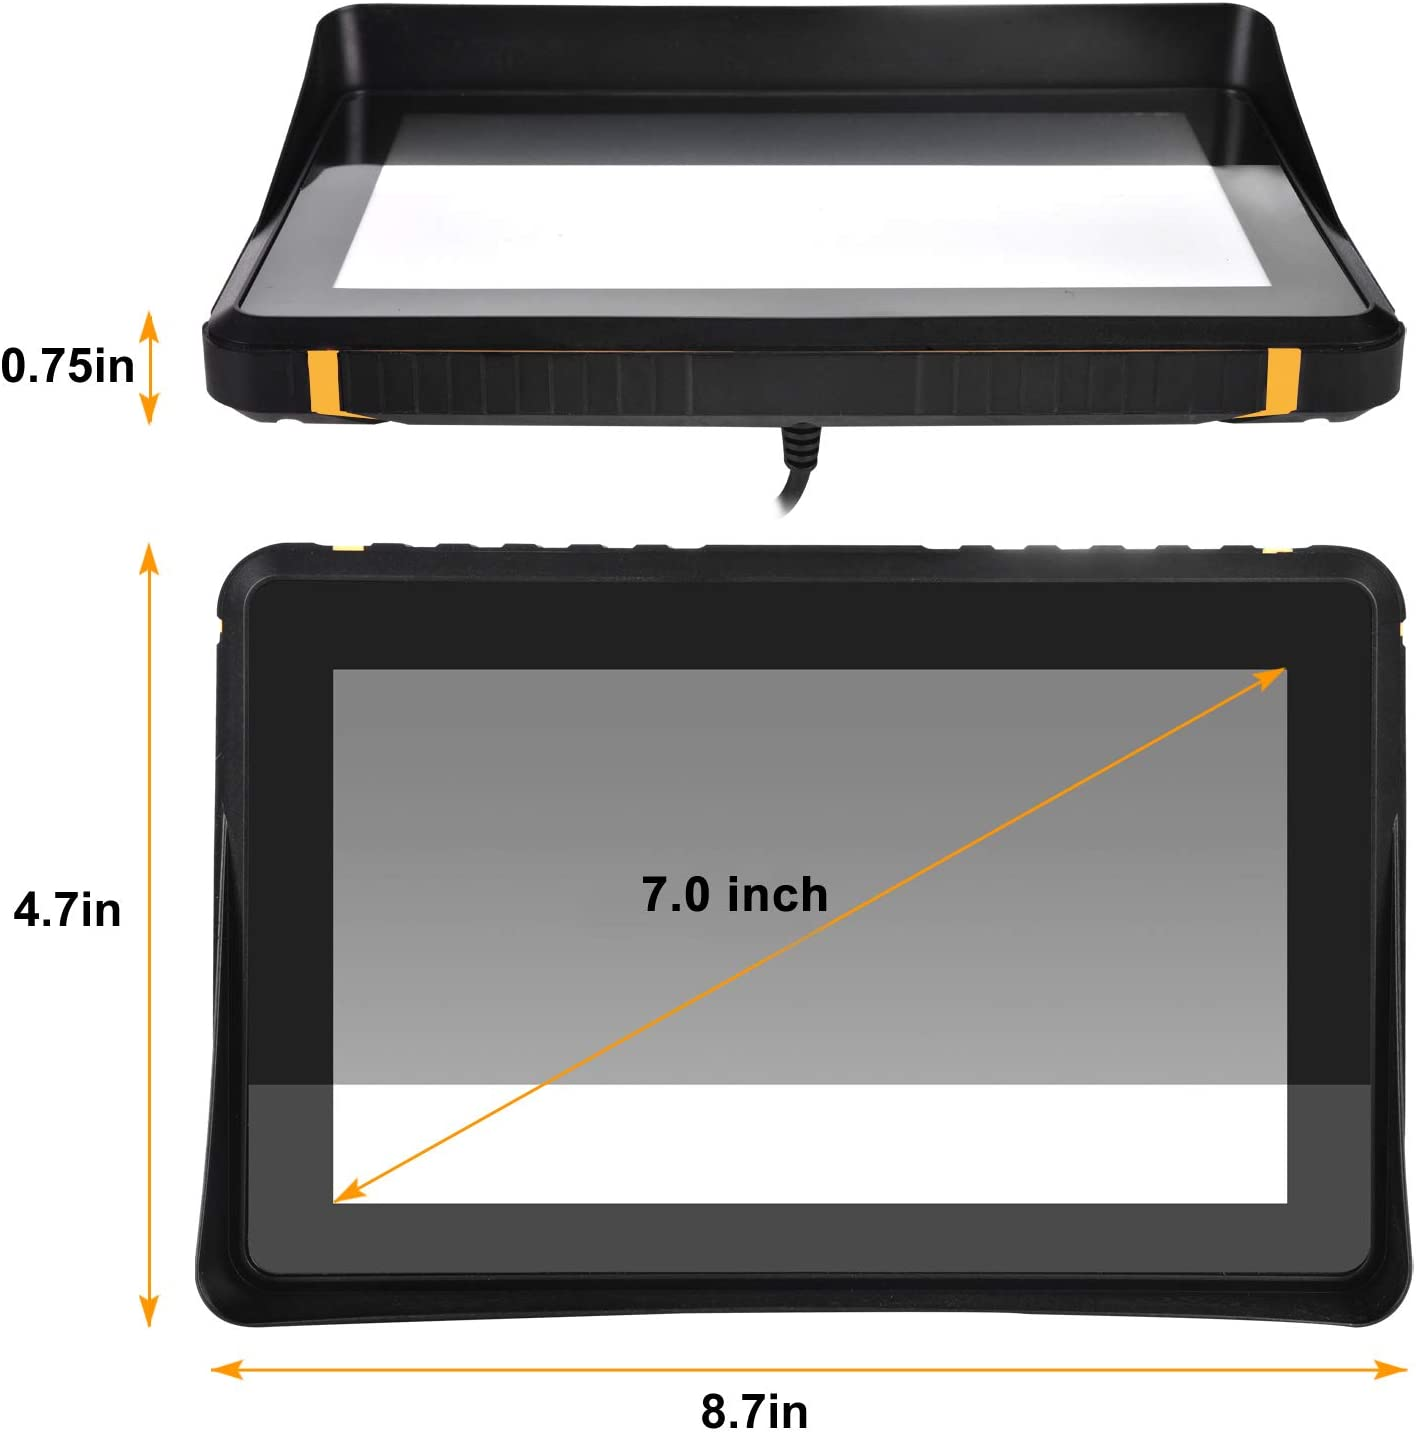 Waterproof GPS Navigation for Motorcycle Cars 7 Inch Speeding Warning Voice Navigation Touch Screen Ultra Bright Rain-Resistant Display